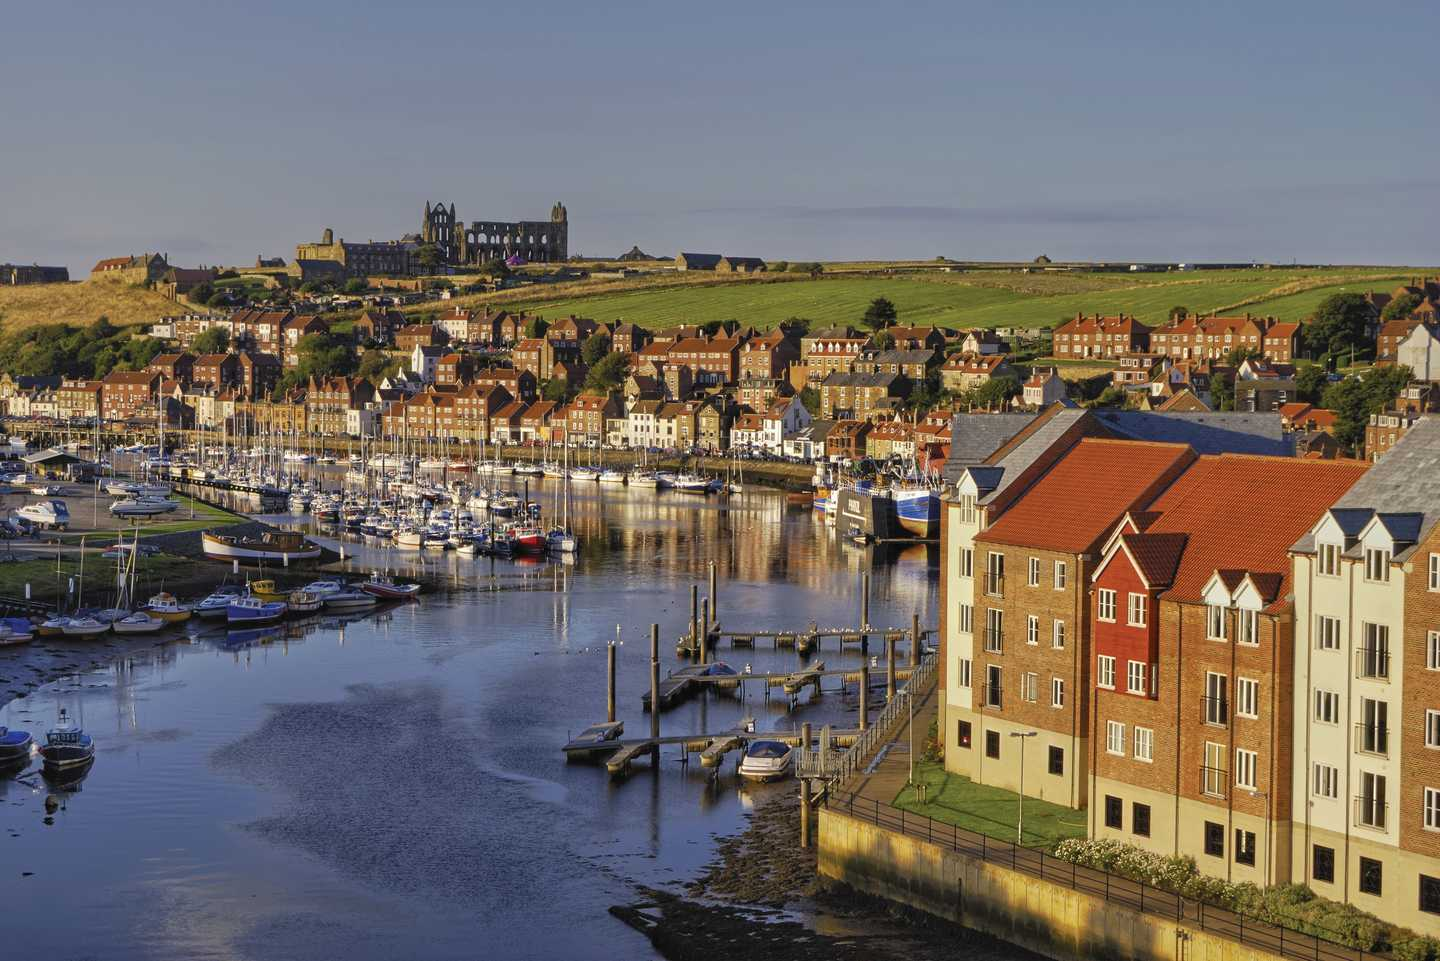 Panoramic overview of Whitby